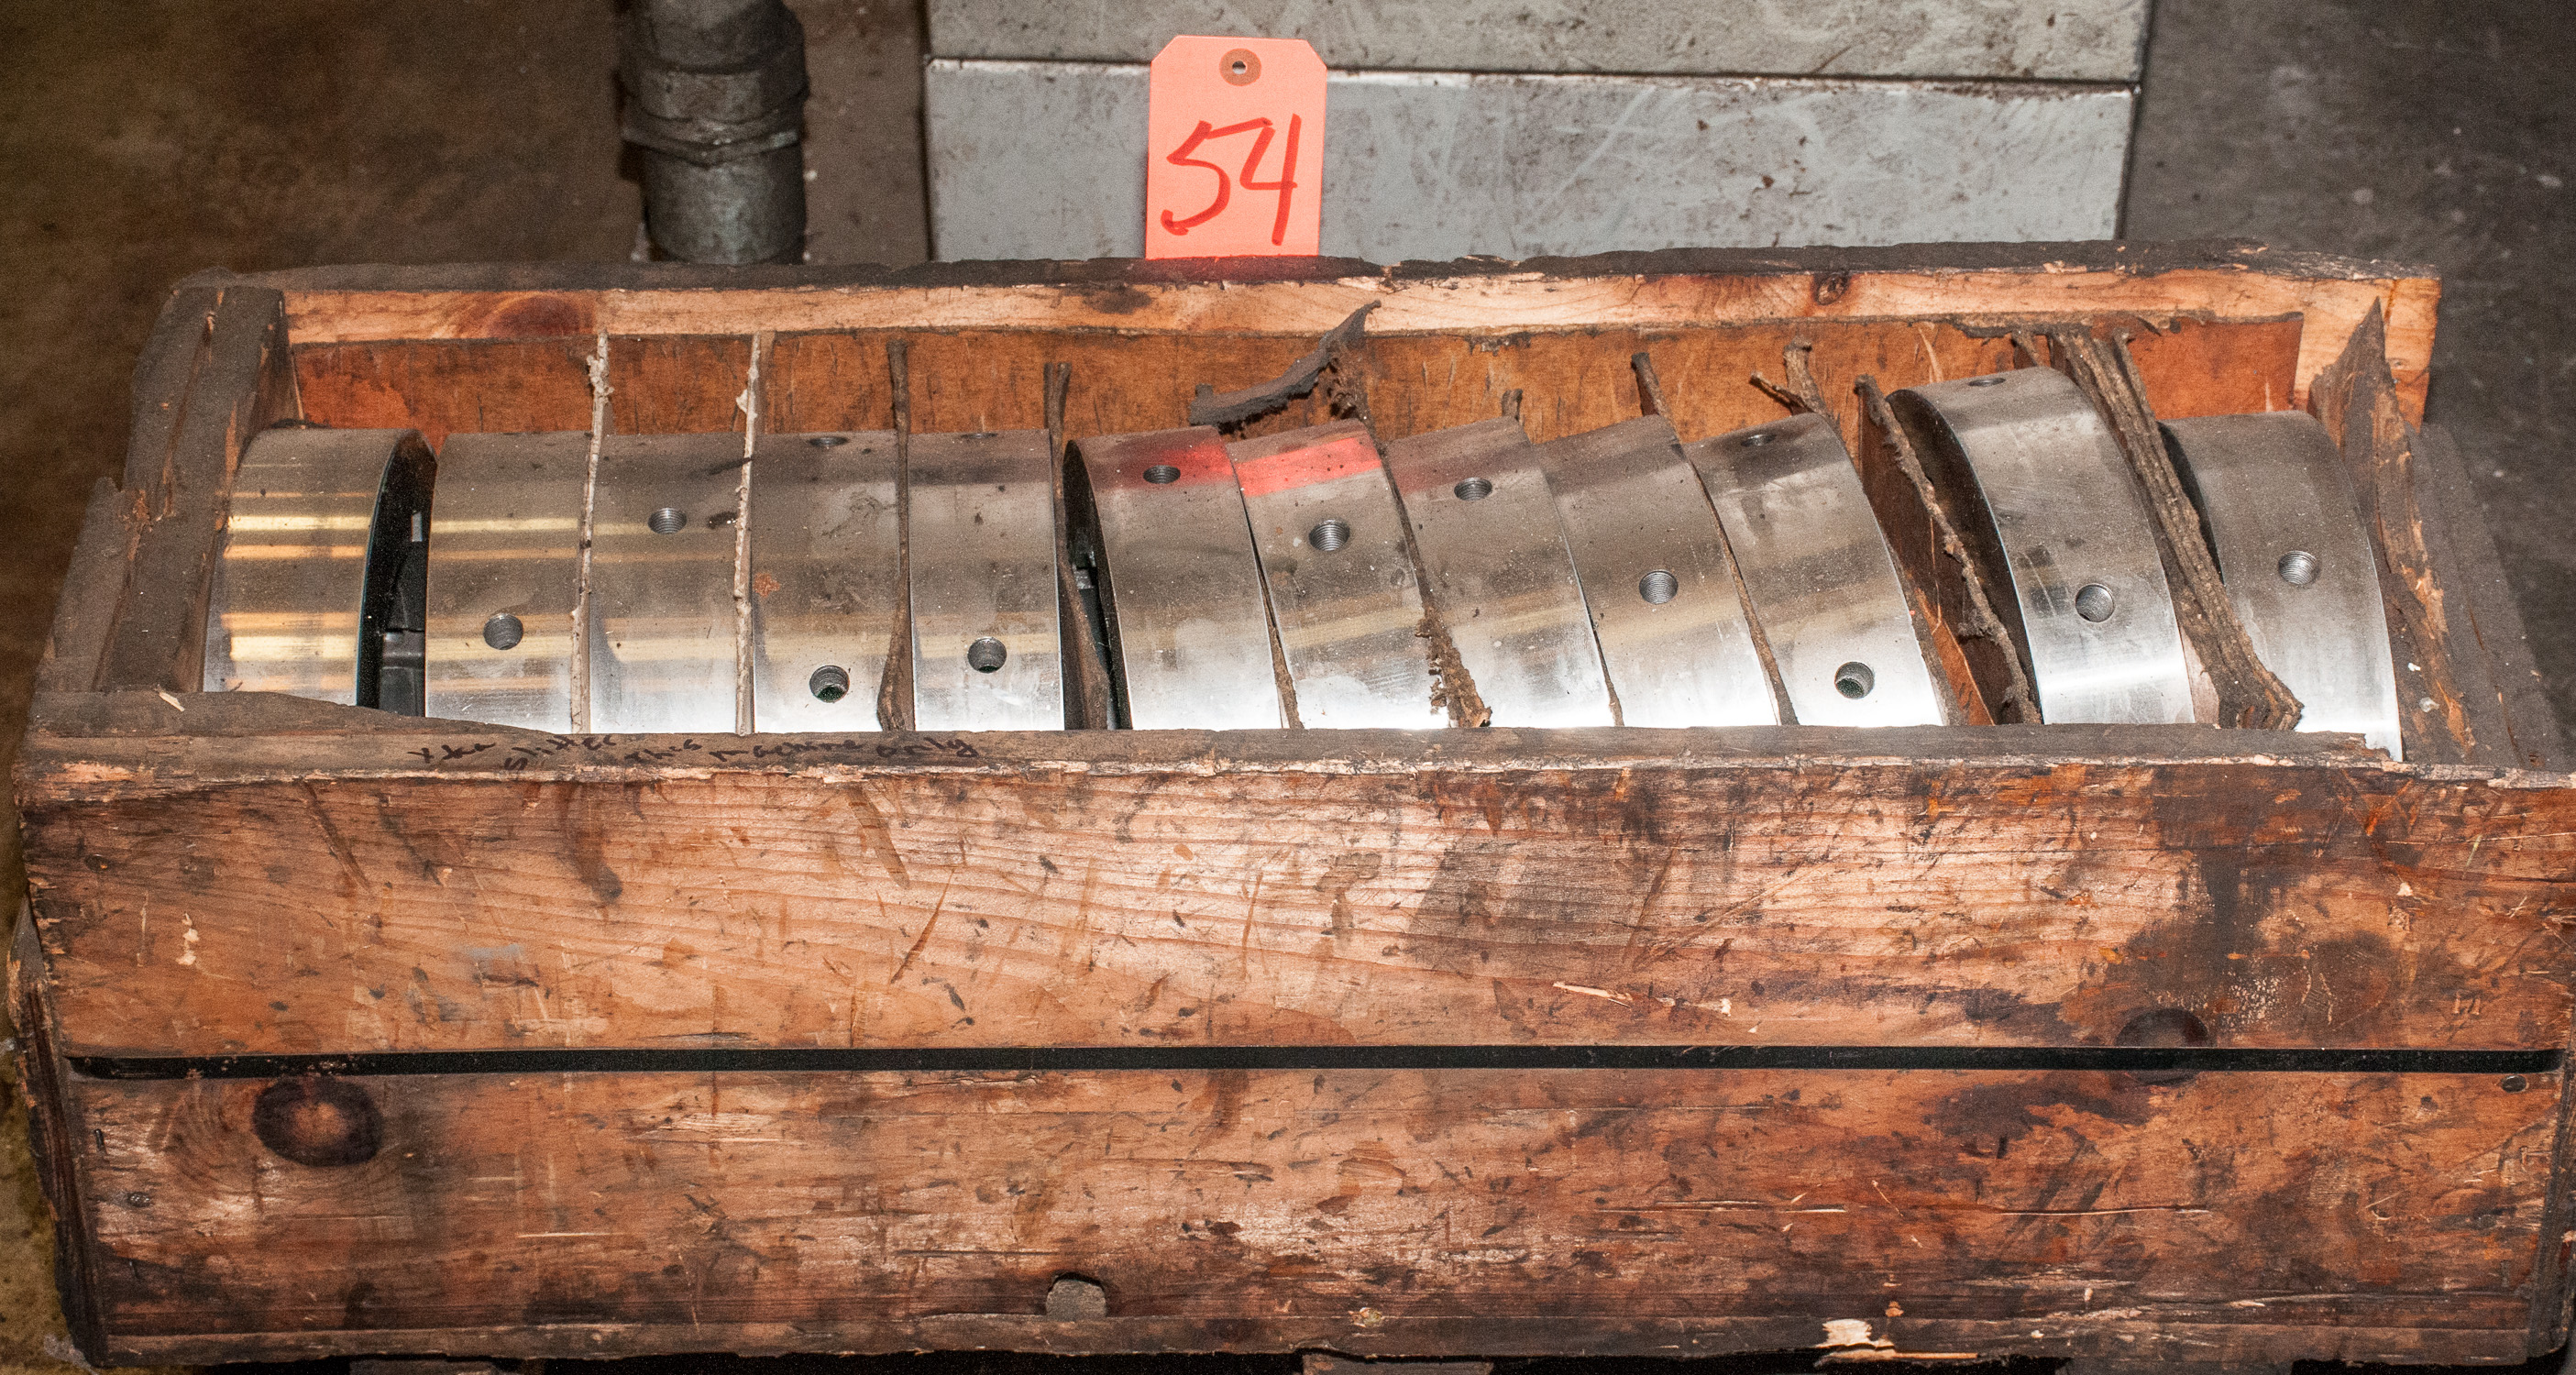 Extra Slear 3 Knives for lot 52